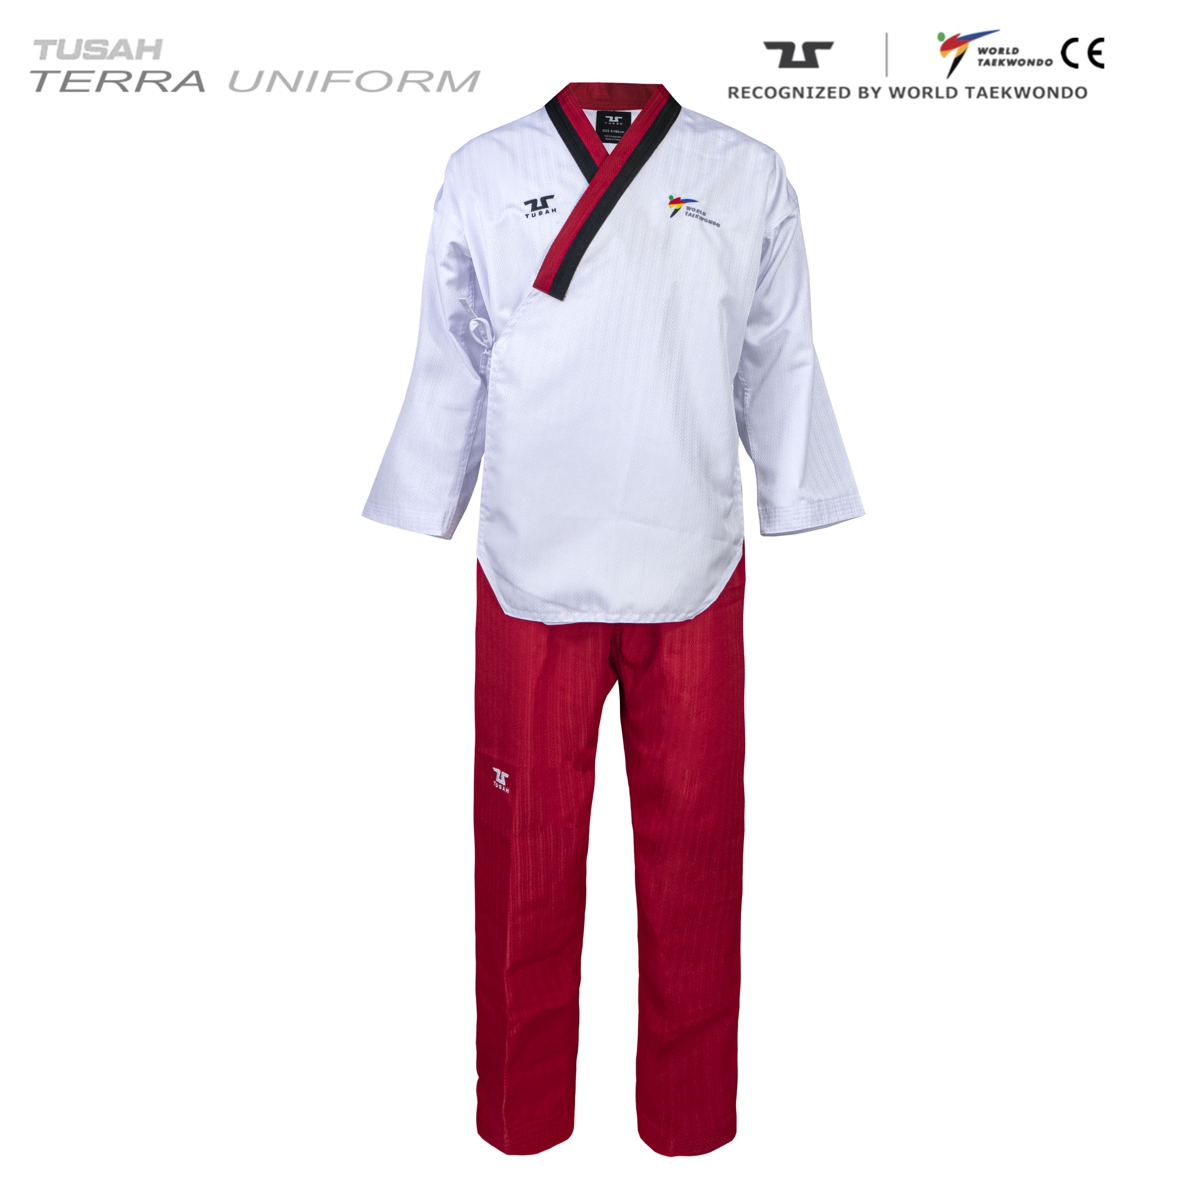 Terra Female Poom Uniform Tuash Taekwondo Poomsae Range